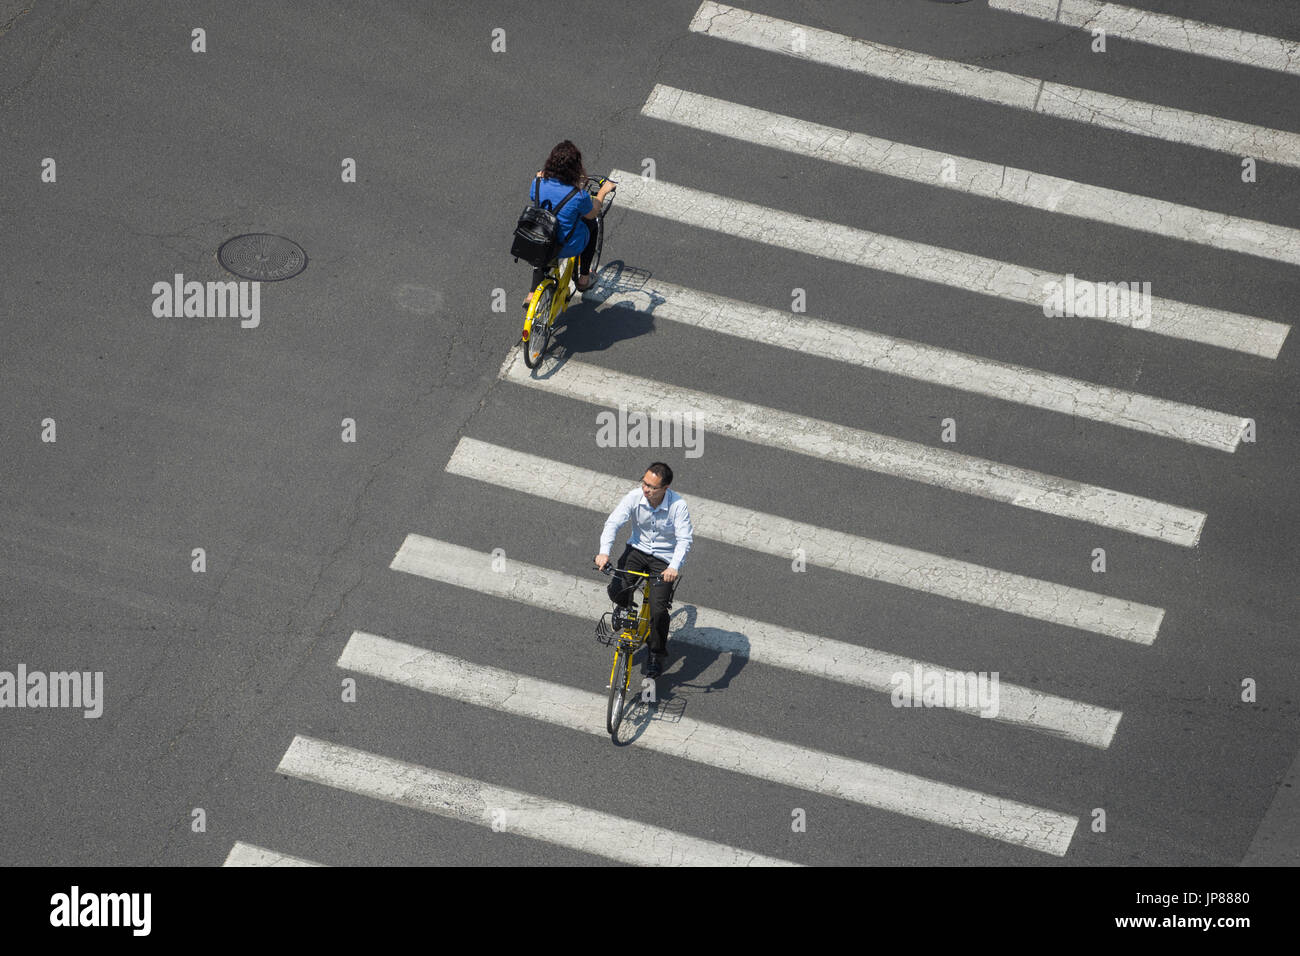 Aerial view of two people bicycling across the crosswalk of a wide road casting shadows on the lines - Stock Image